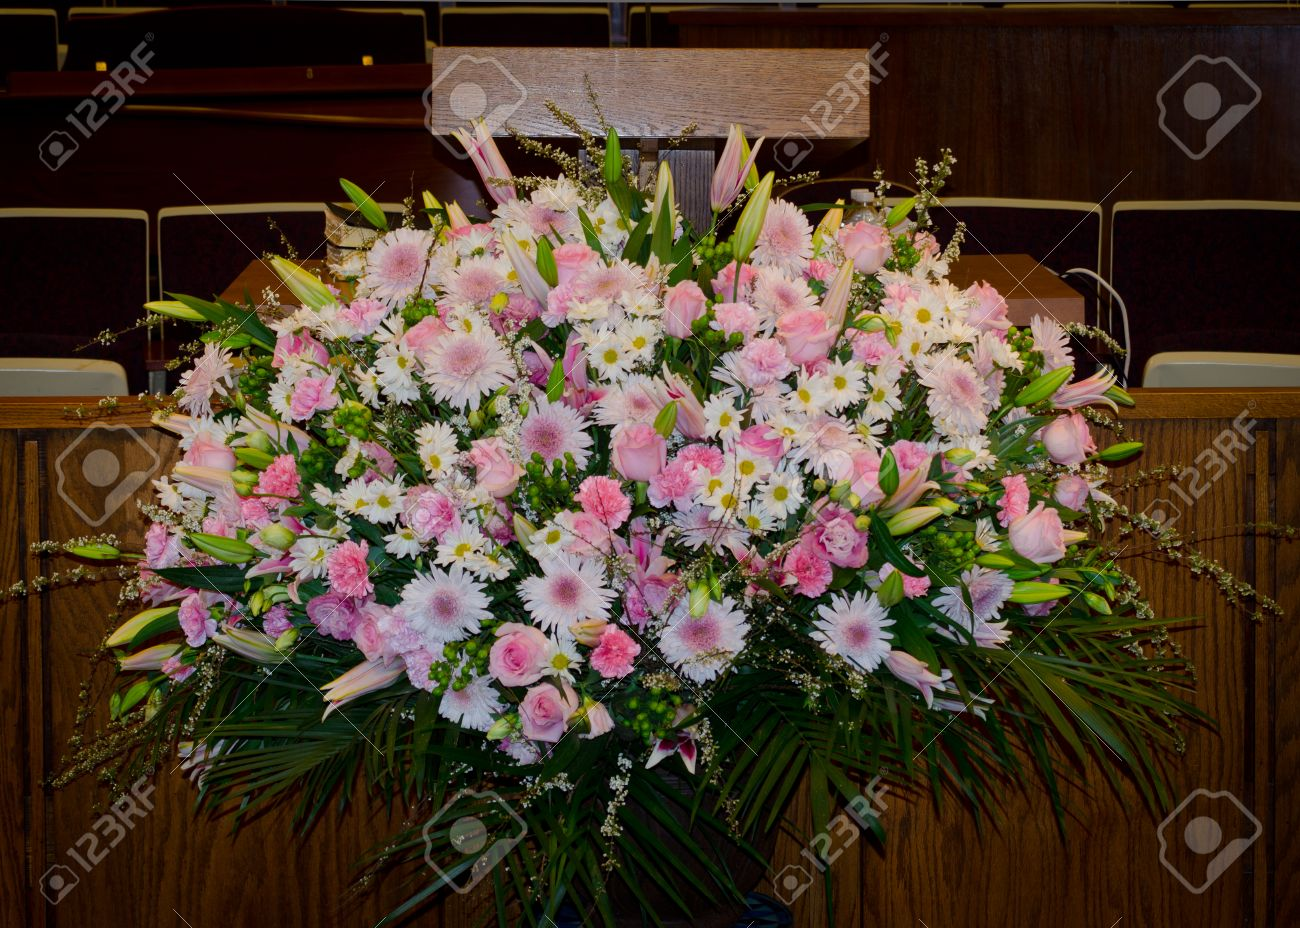 Spring pulpit flower arrangement with palm fronds and pink white spring pulpit flower arrangement with palm fronds and pink white and lavender carnations lillies mightylinksfo